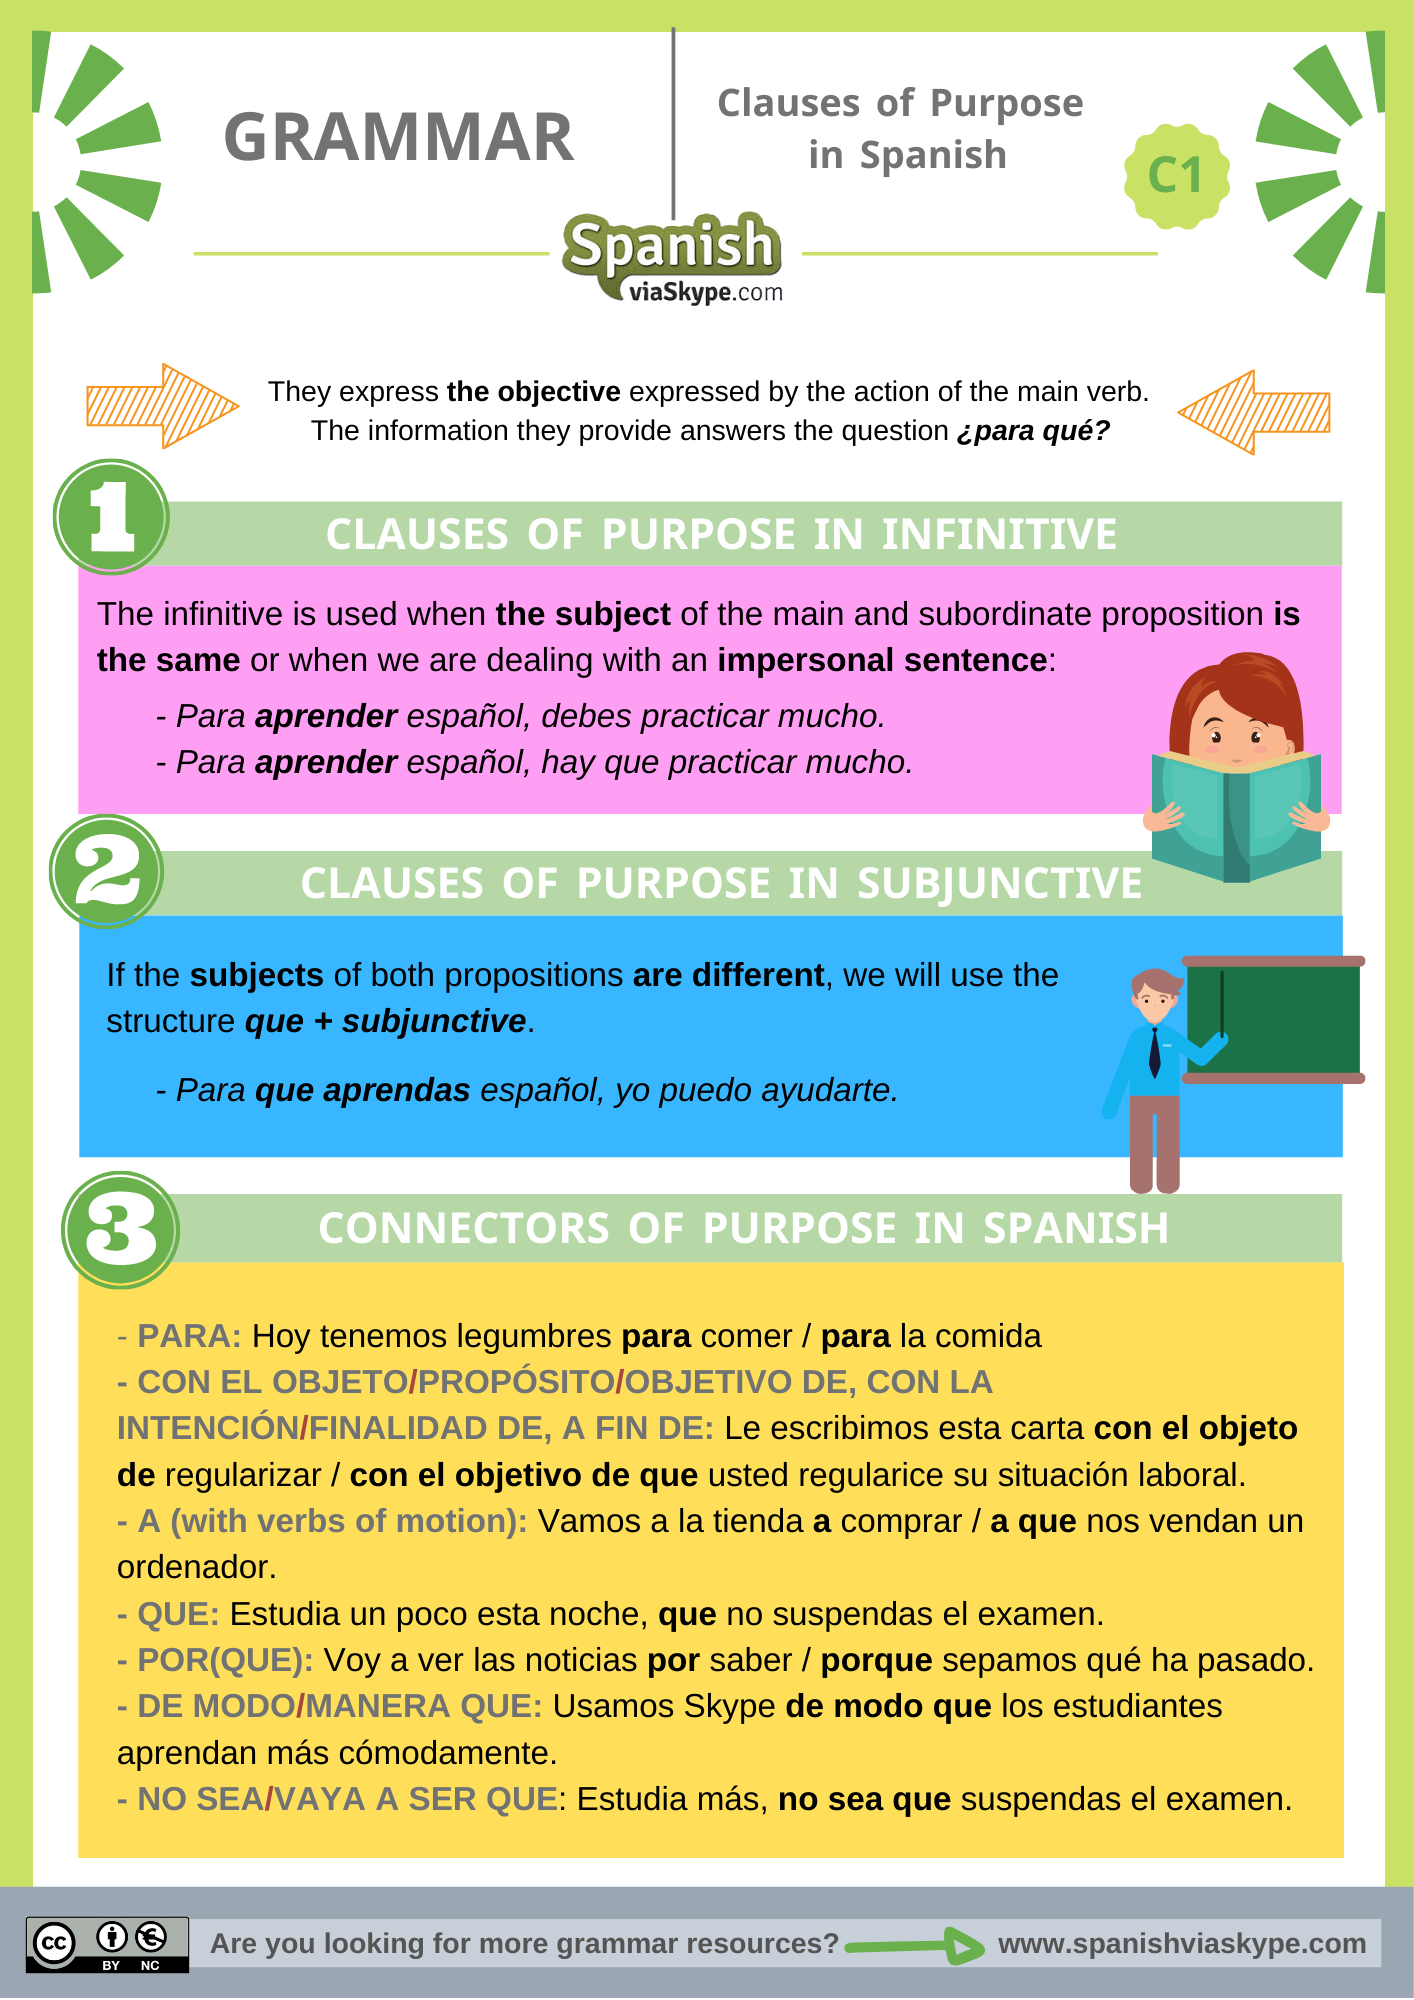 Infographic about the clauses of purpose in Spanish